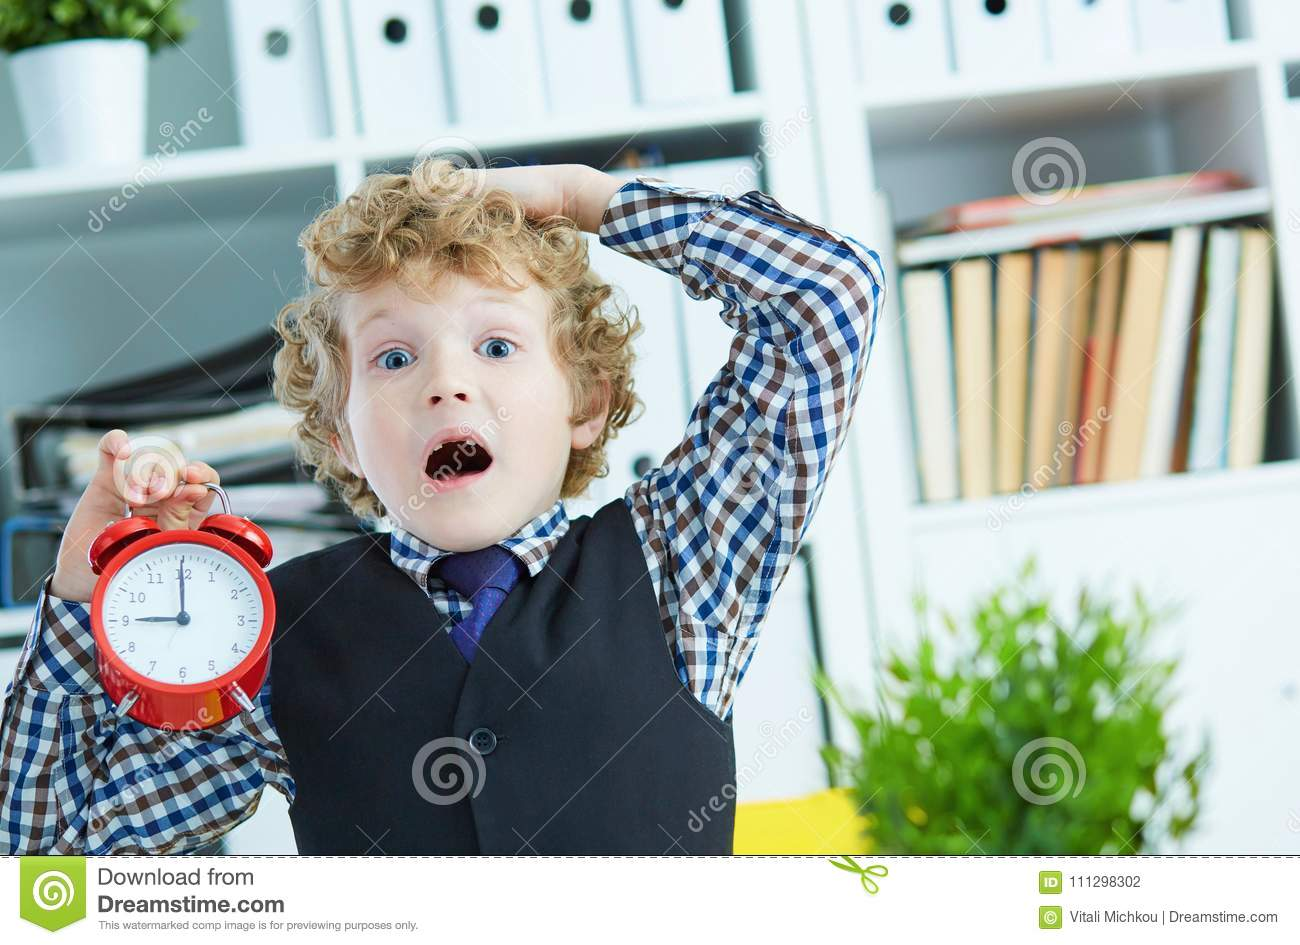 Disappointed kid boss holding a big red alarm clock in his hand suggesting you are late for work.